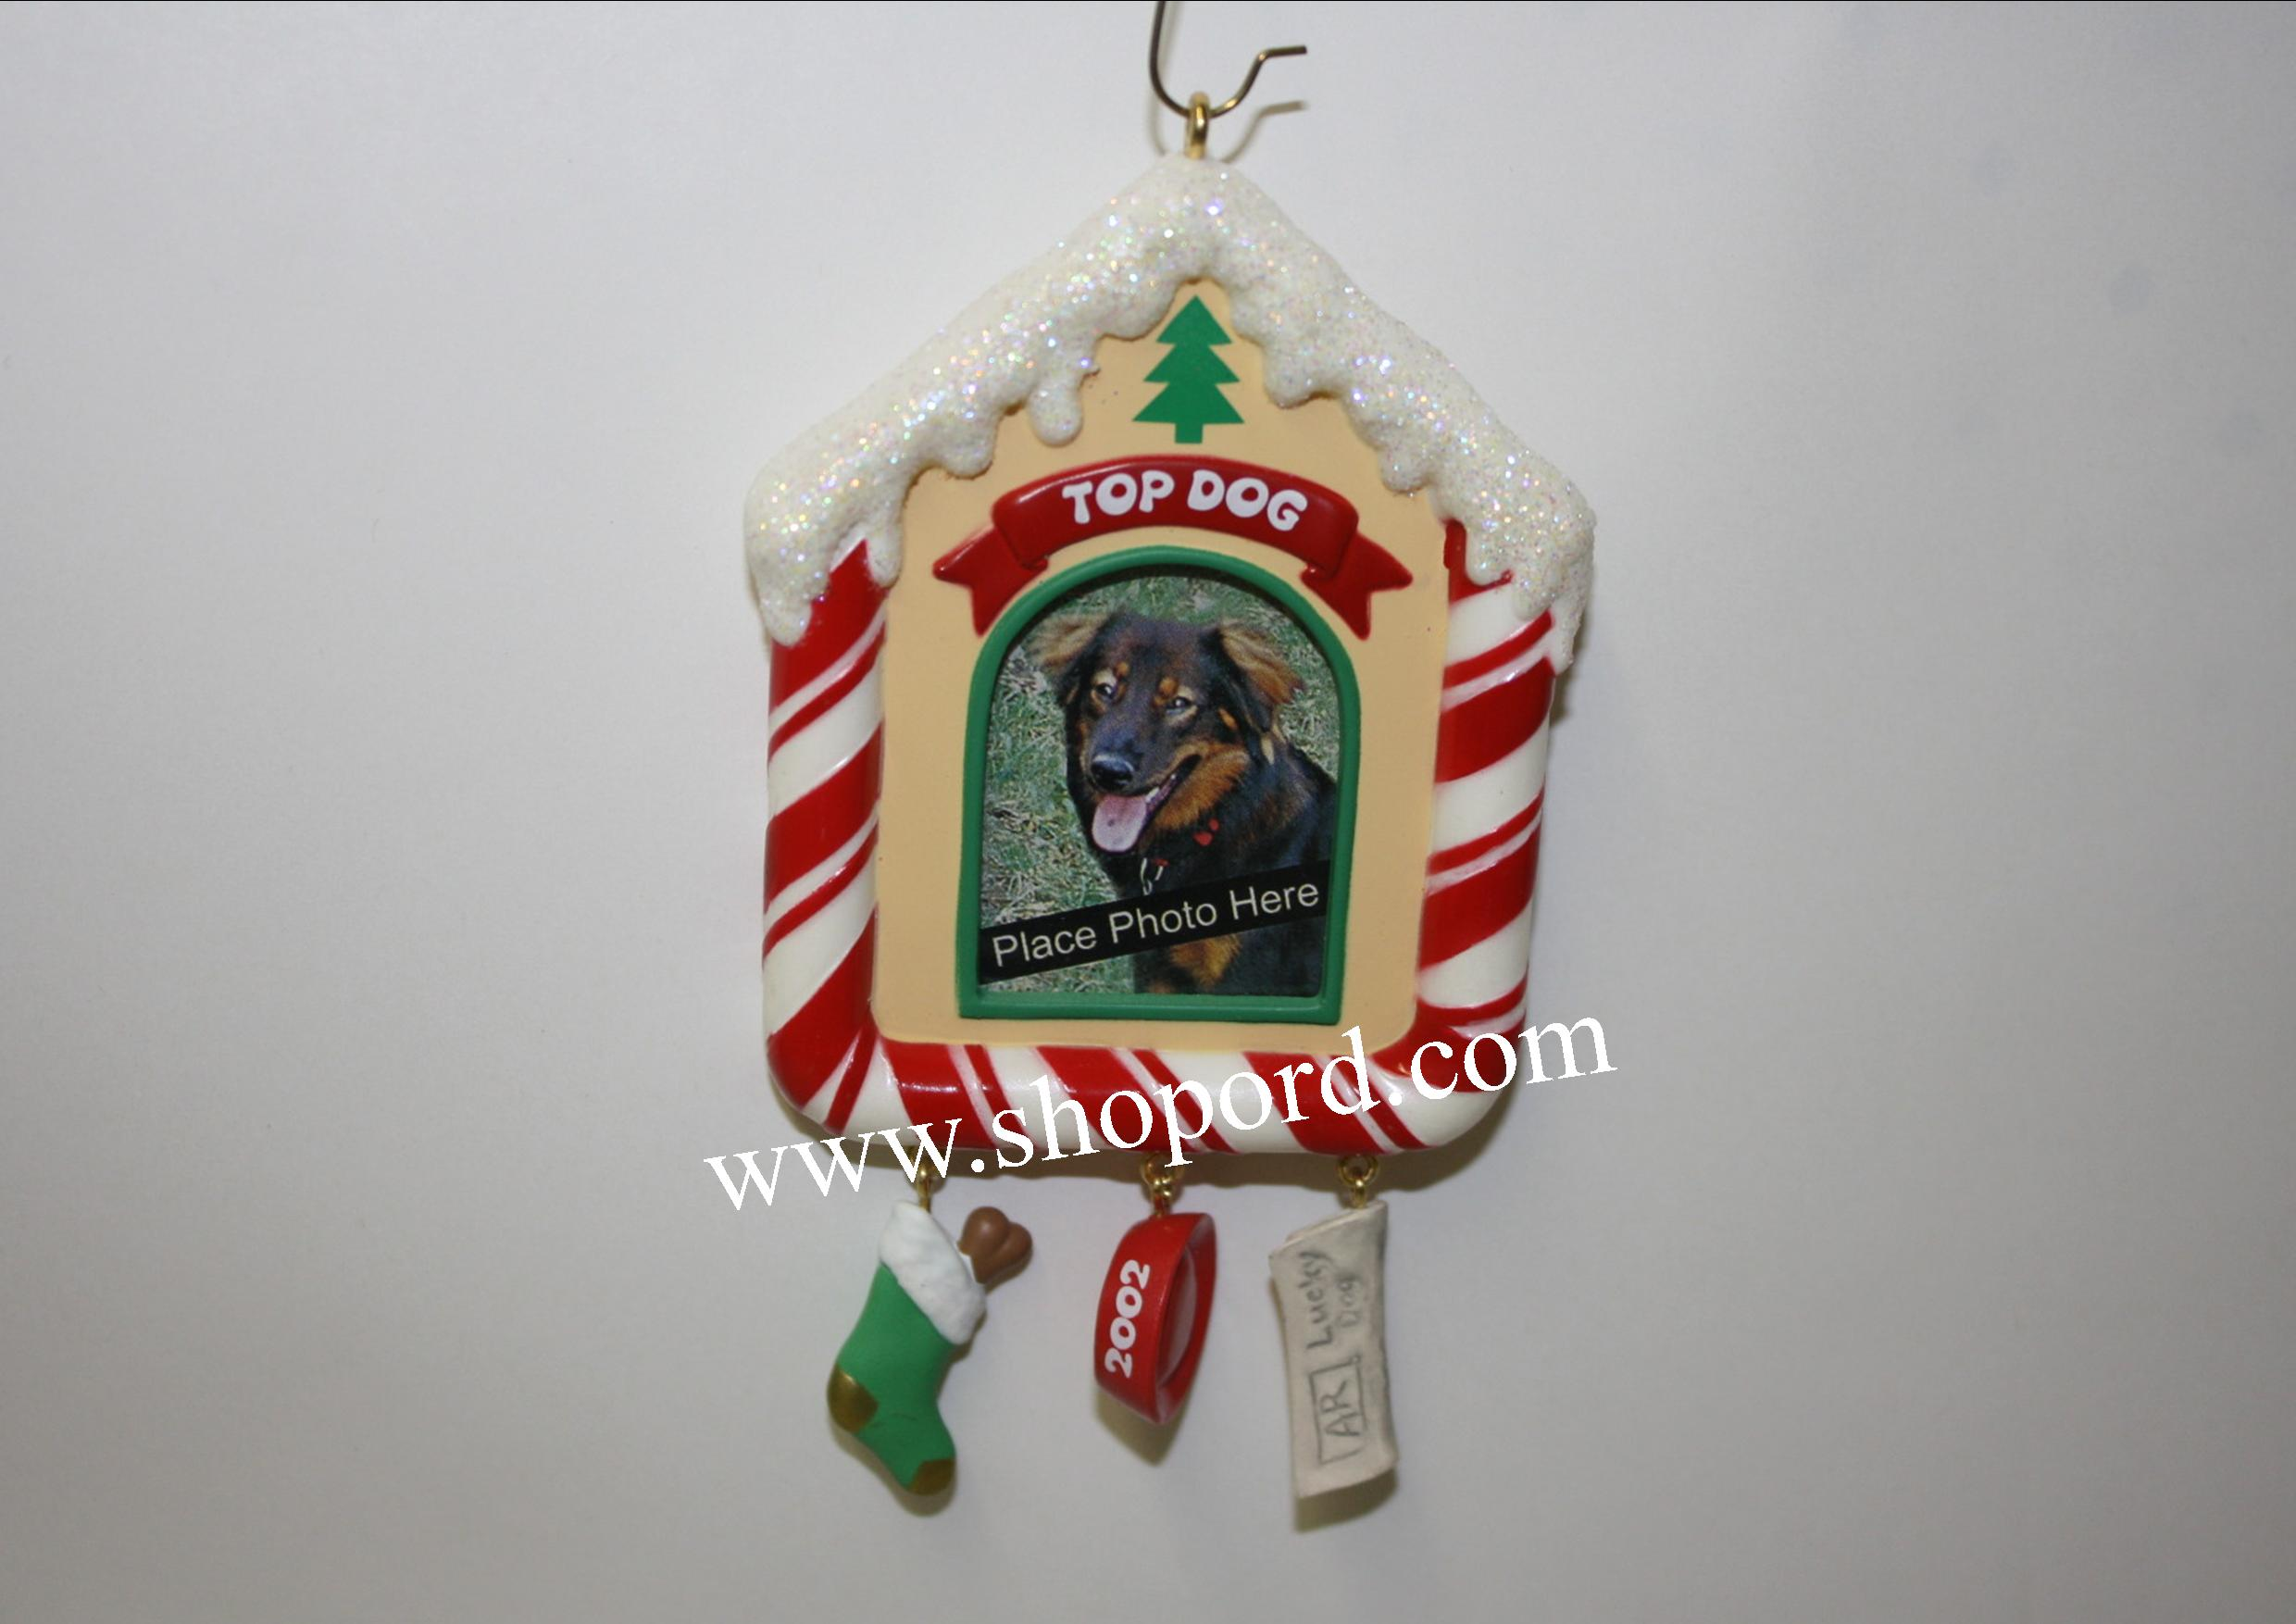 Hallmark 2002 Special Dog Photo Holder Ornament QX8716